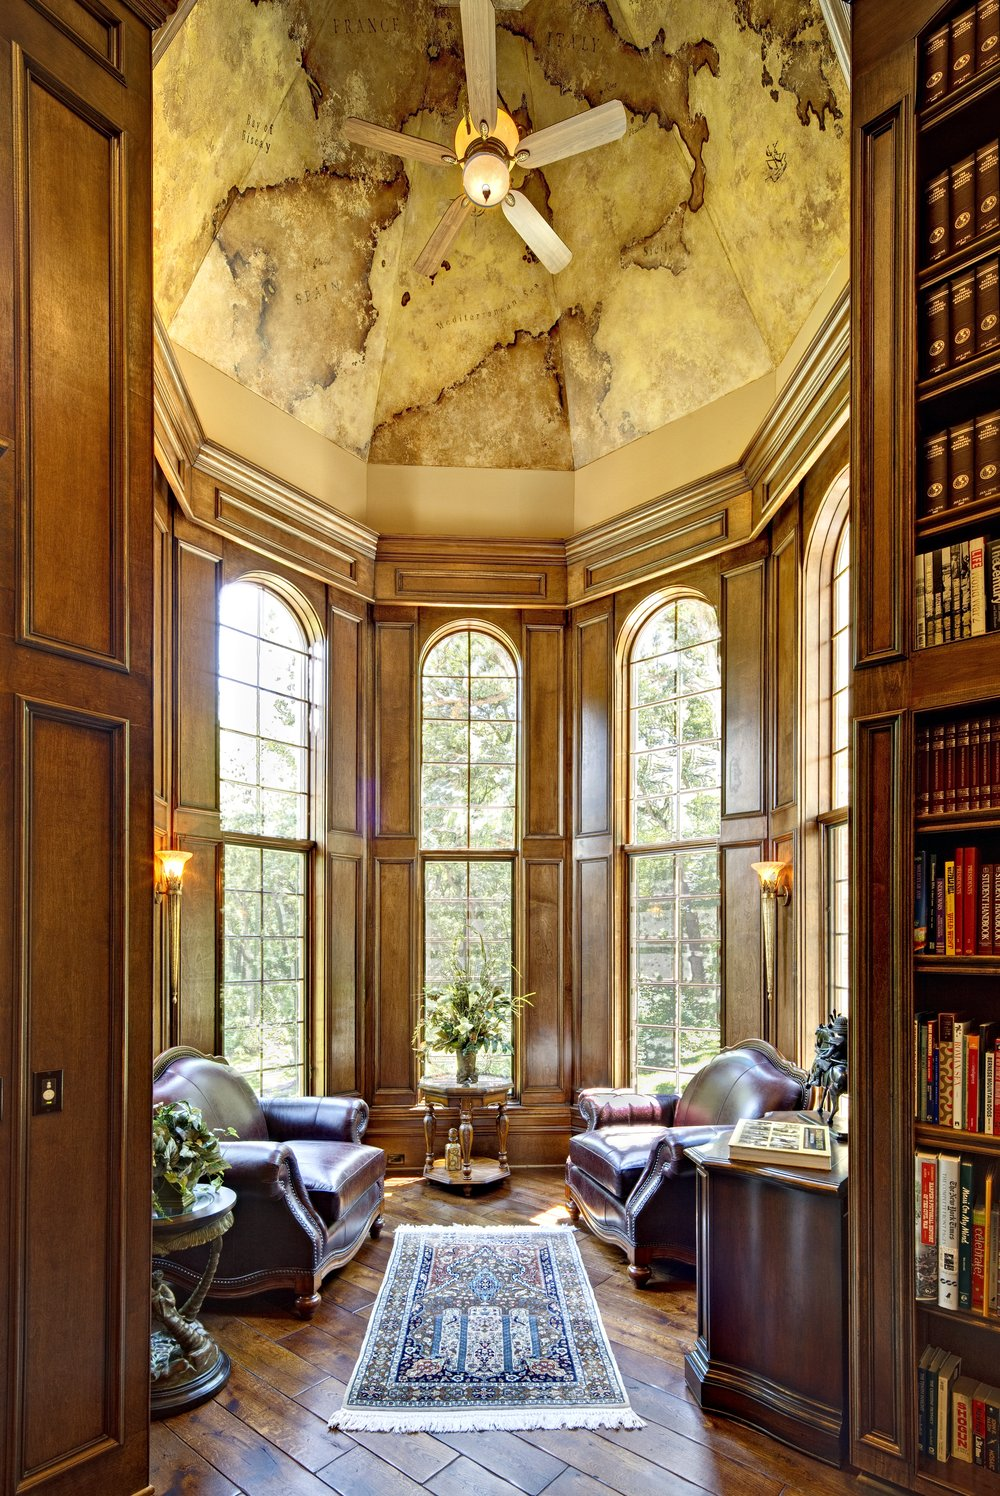 Dream Study in Turret with Old Europe Mural